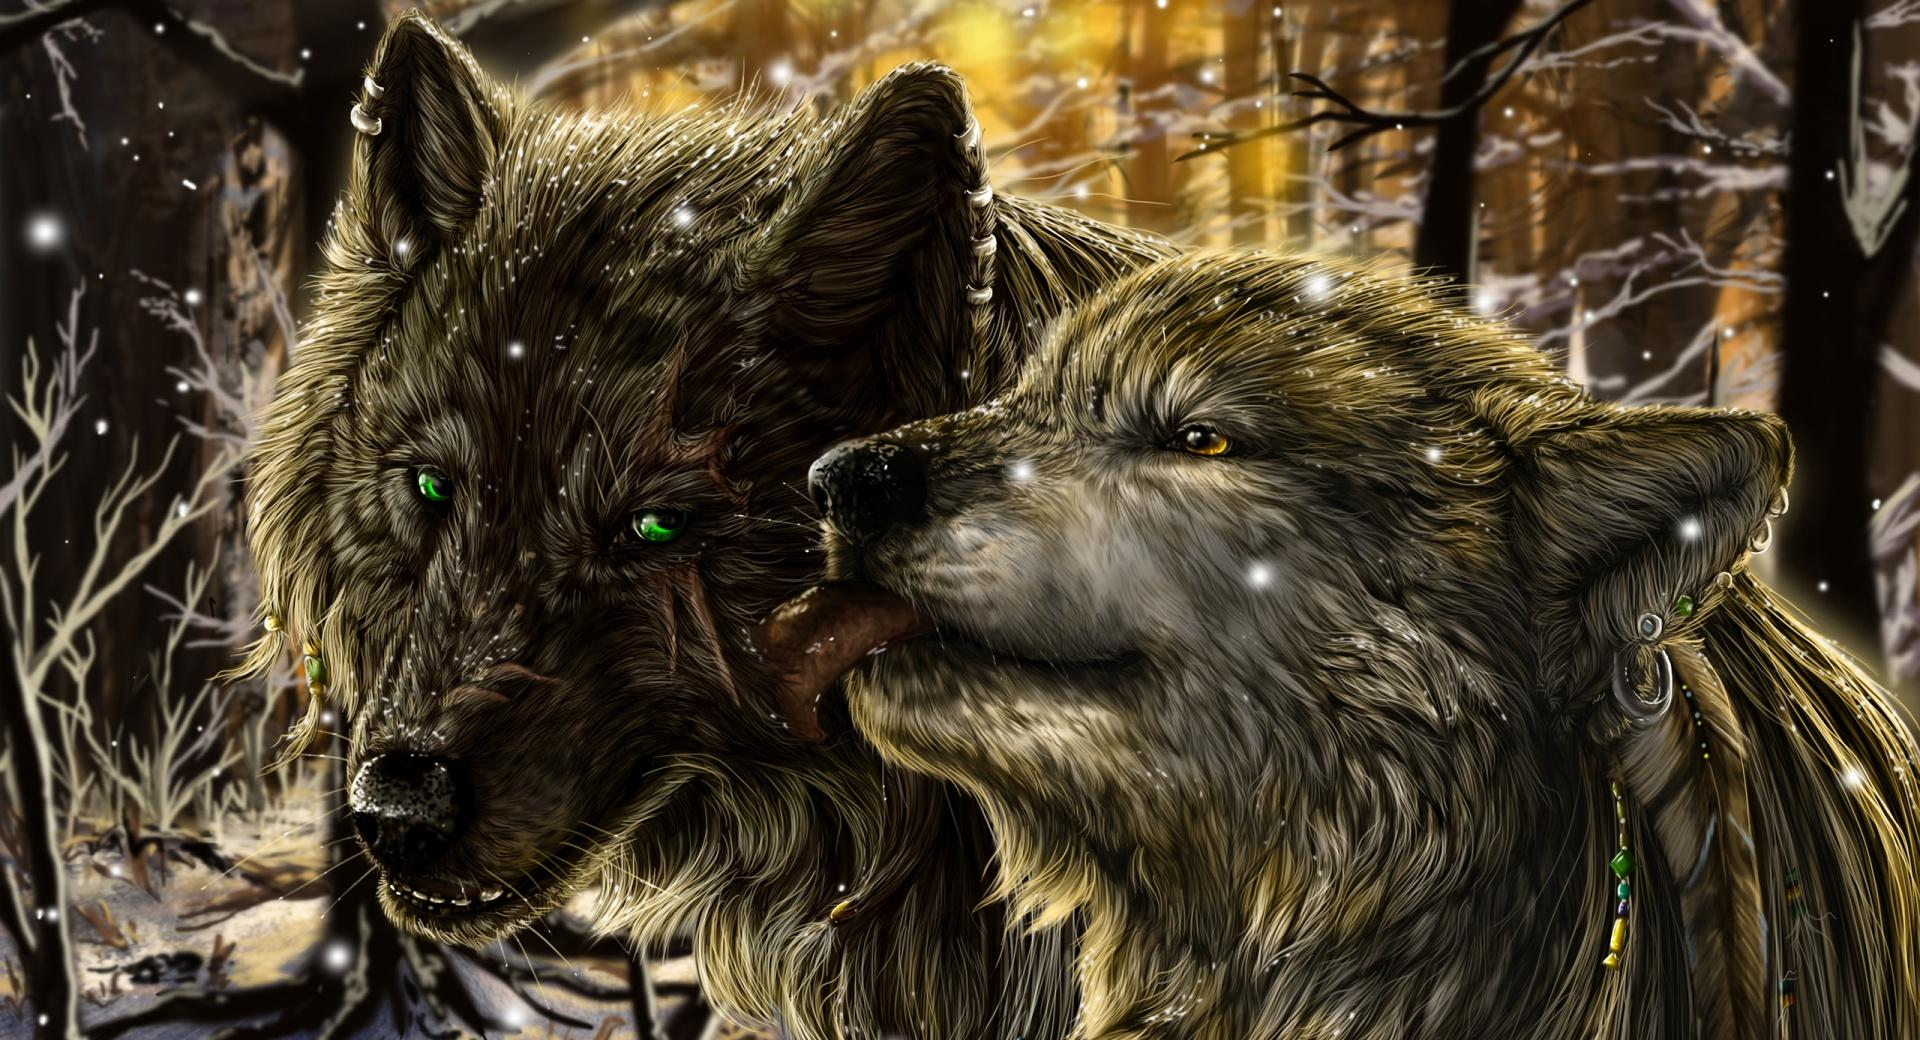 Wolves Love wallpapers HD quality